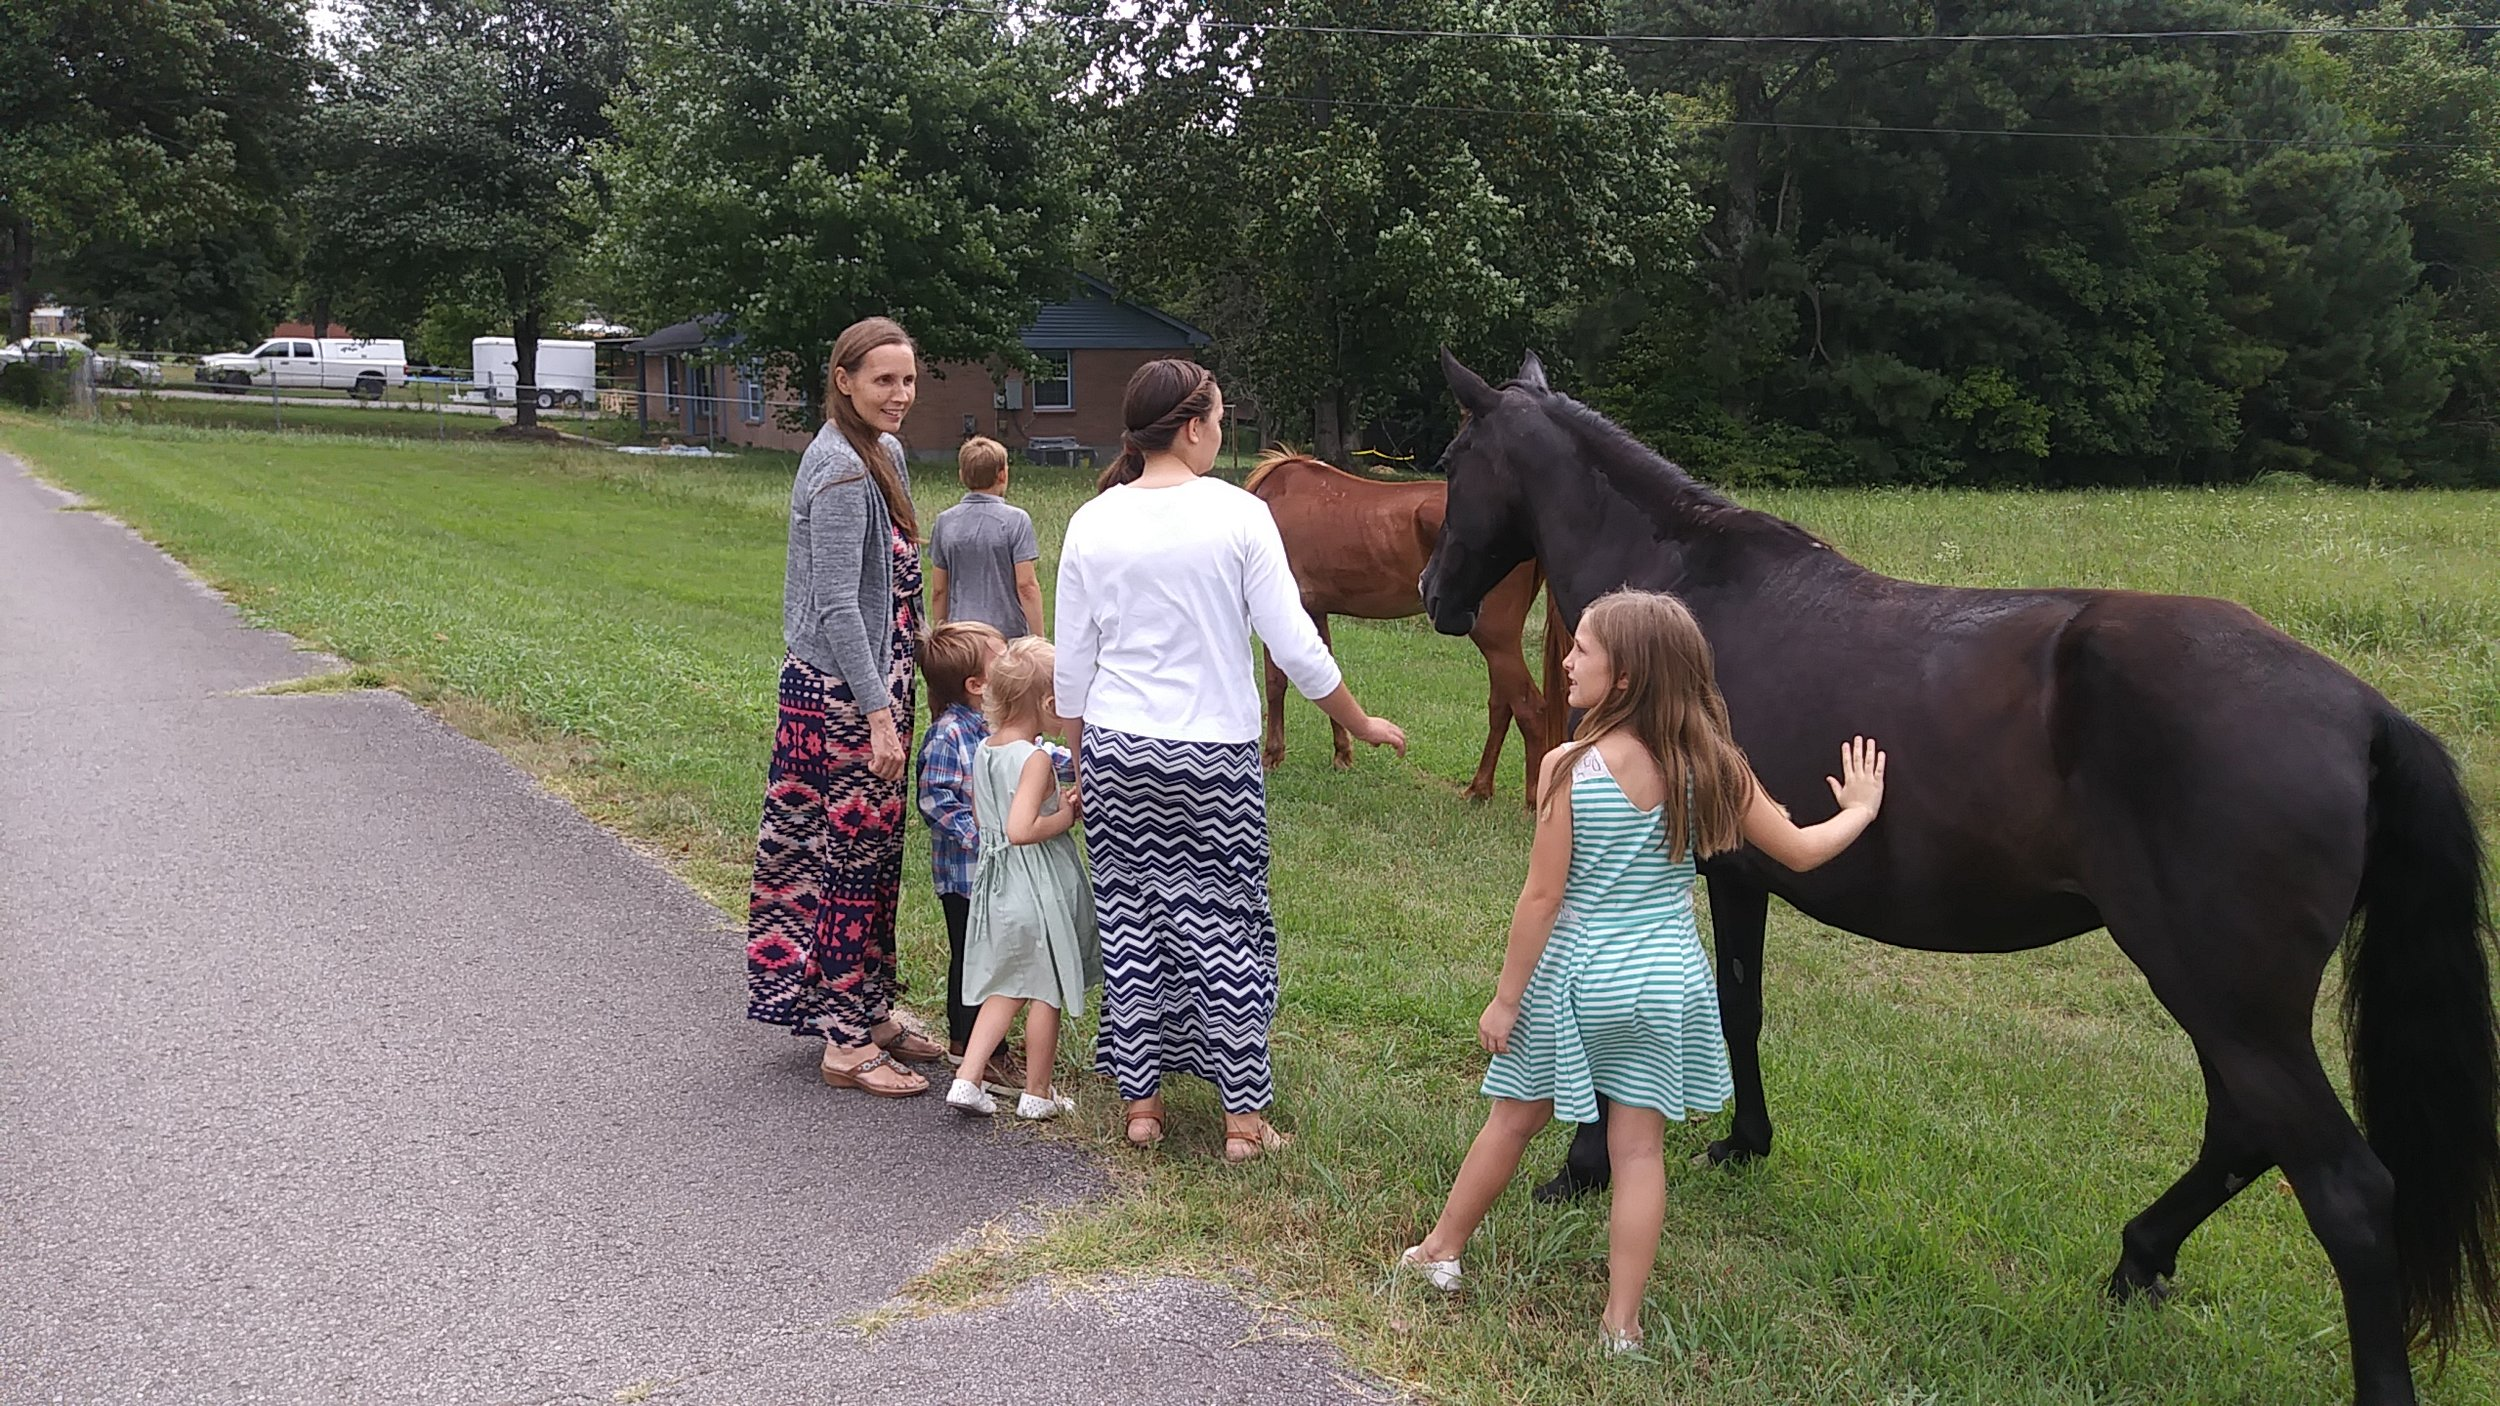 Horse Visit - We came home to horses in our yard. Turns out that Myrtle and Gracie are regular visitors.